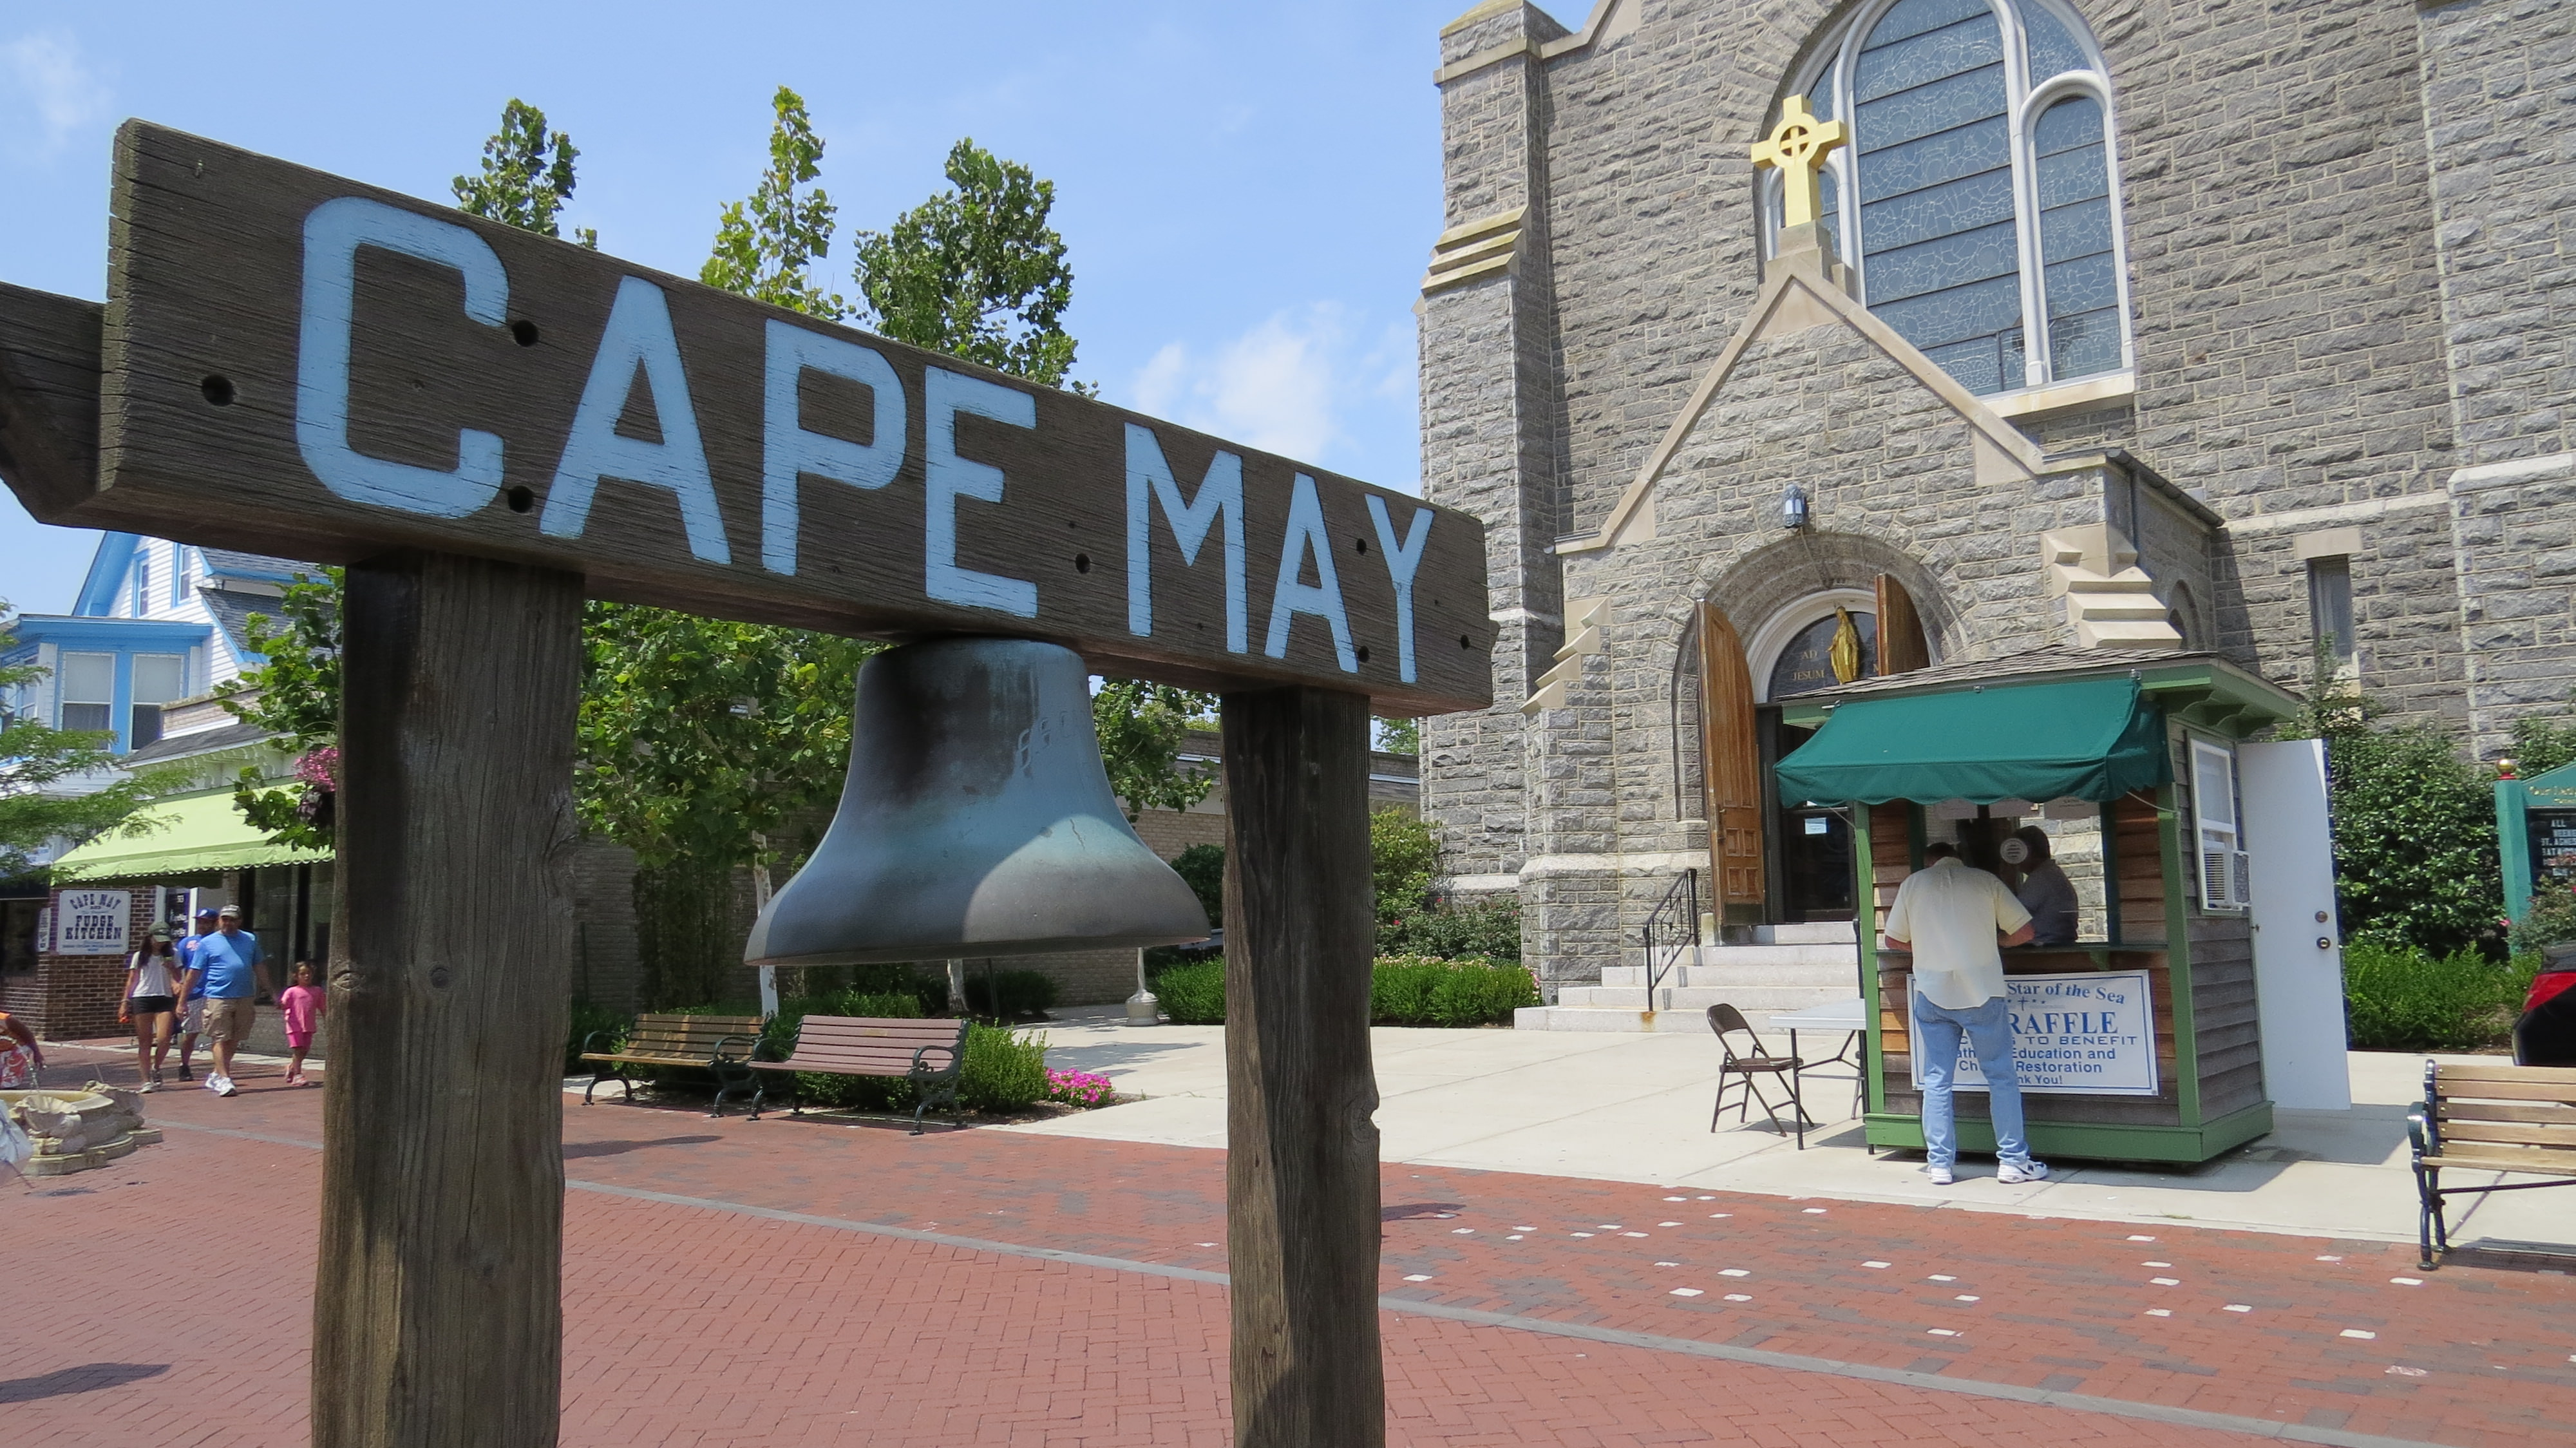 cape may bell